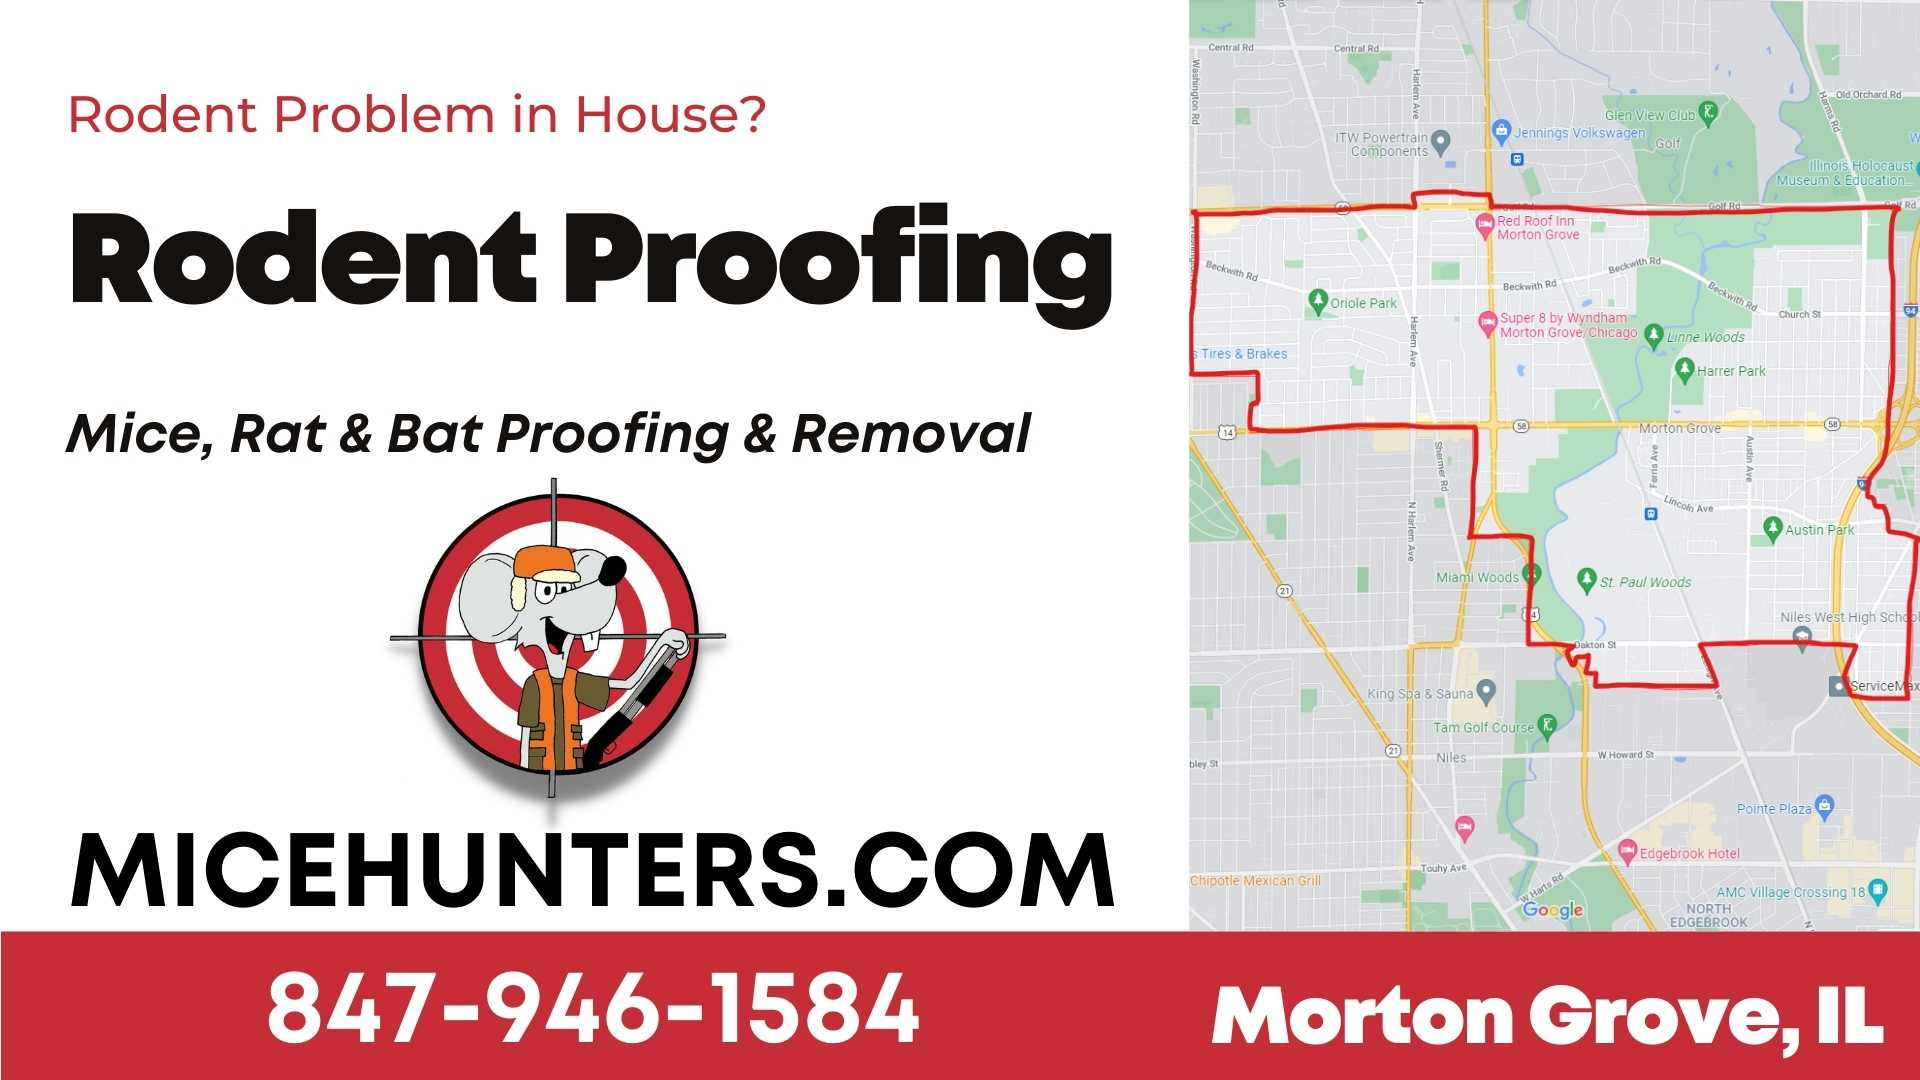 Morton Grove Rodent and Mice Proofing Exterminator Near Me